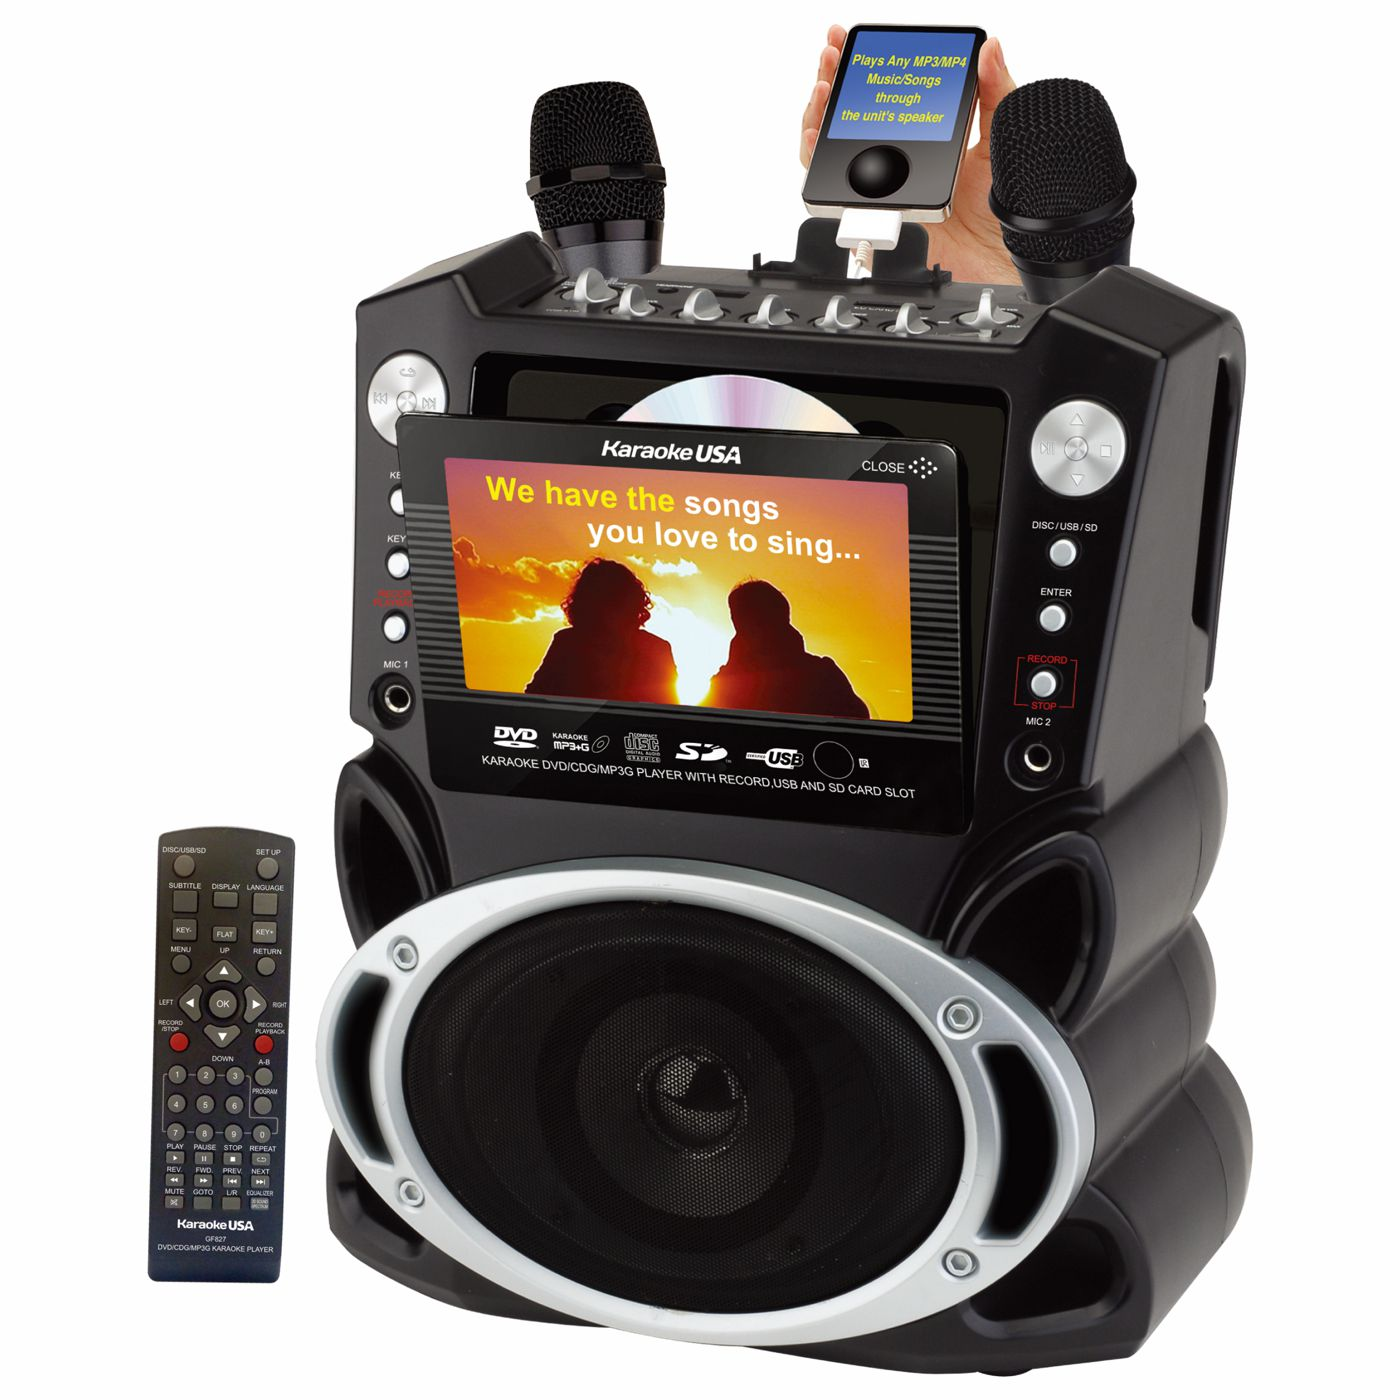 GF829 - DVD/CDG/MP3G Karaoke System with 7